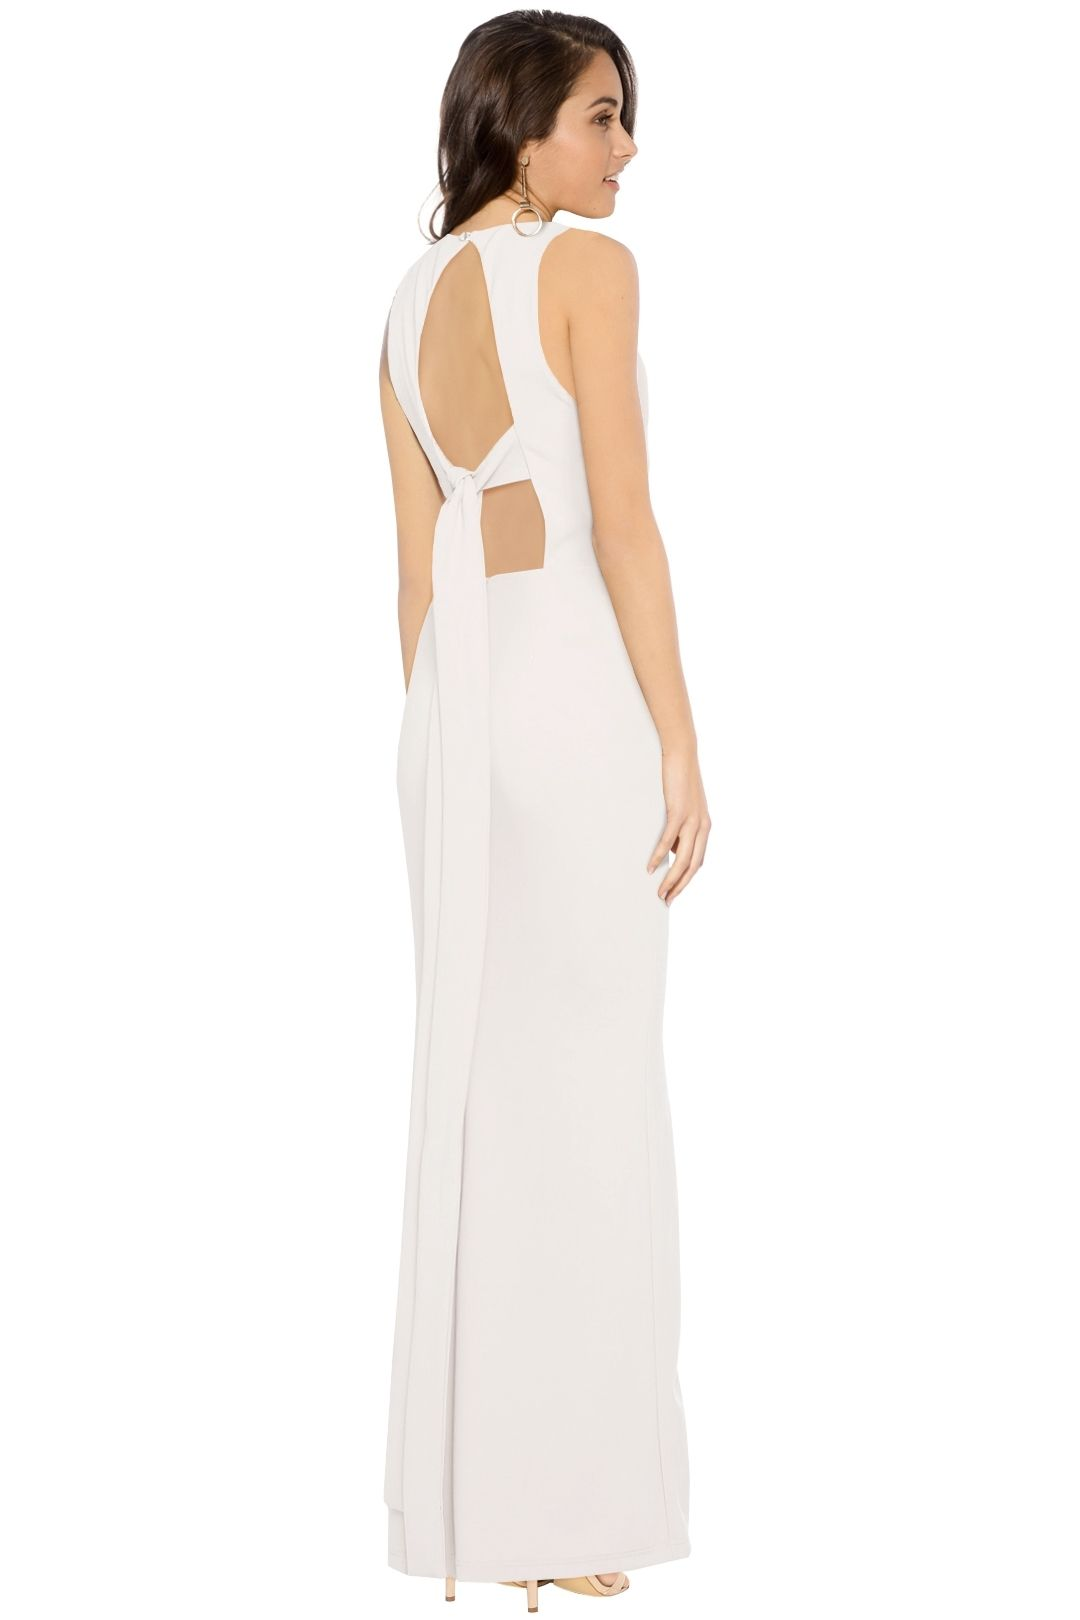 Pasduchas - Cruz Gown - Ivory - Back